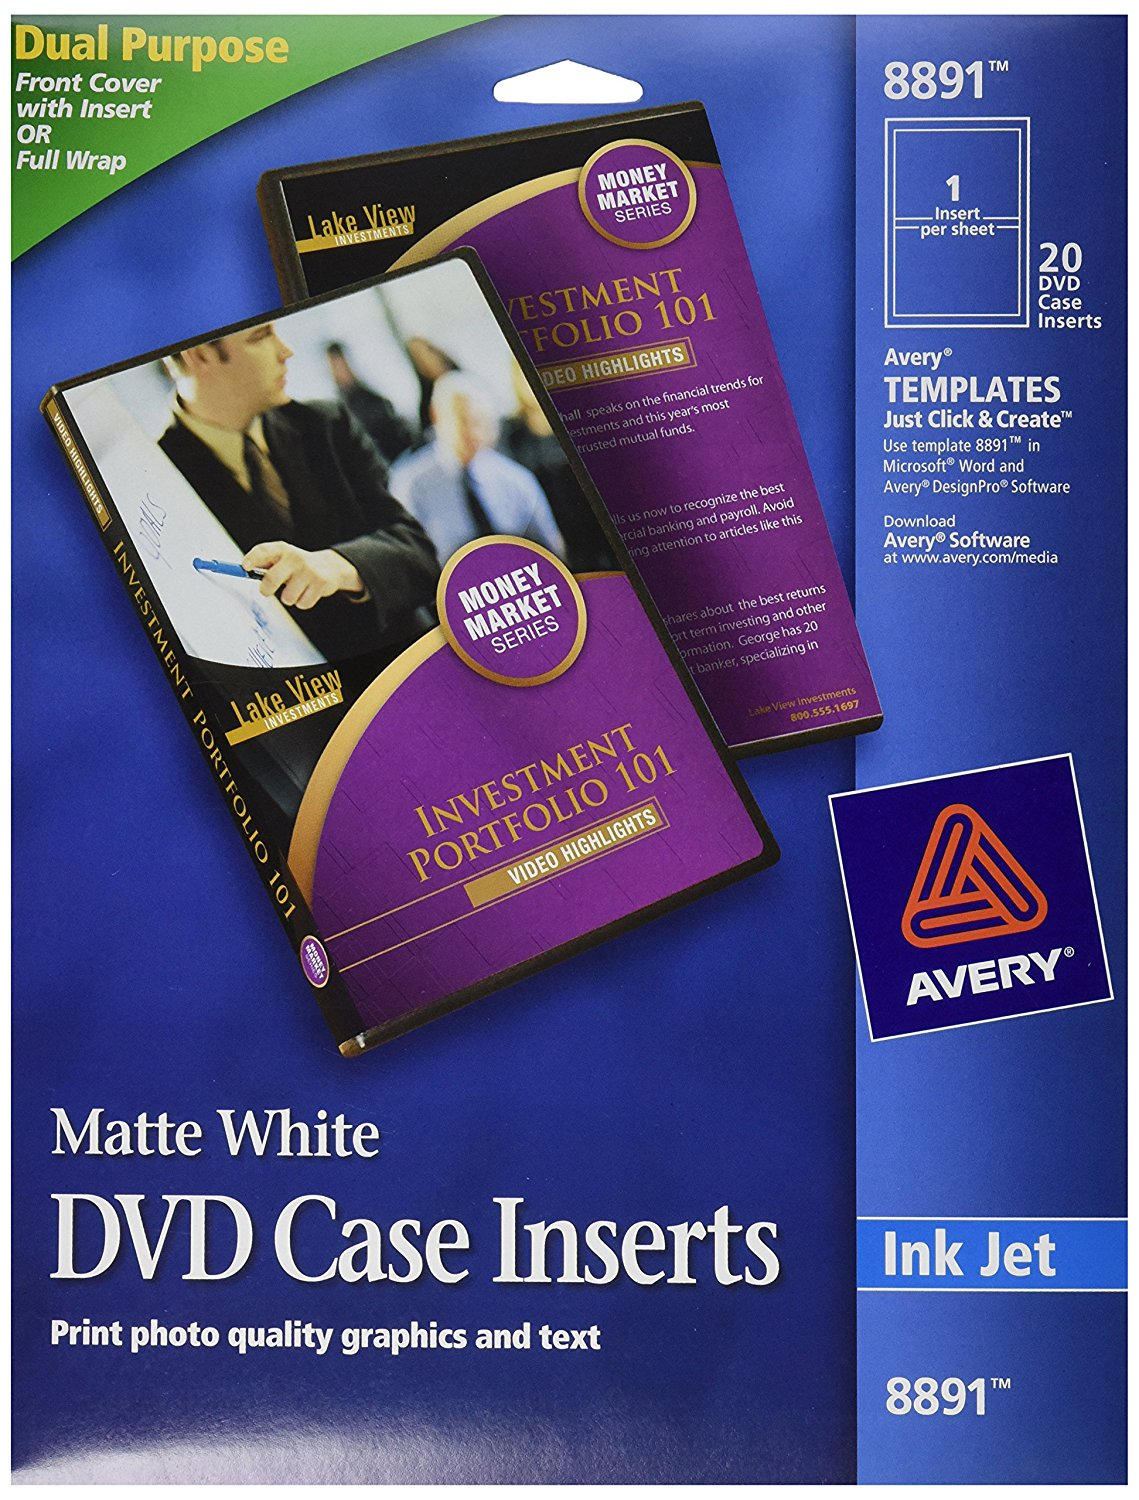 8891 Inkjet DVD Case Inserts, Matte White (Pack of 20), CD DVD jewel case inserts for inkjet printers. By Avery From USA by Avery